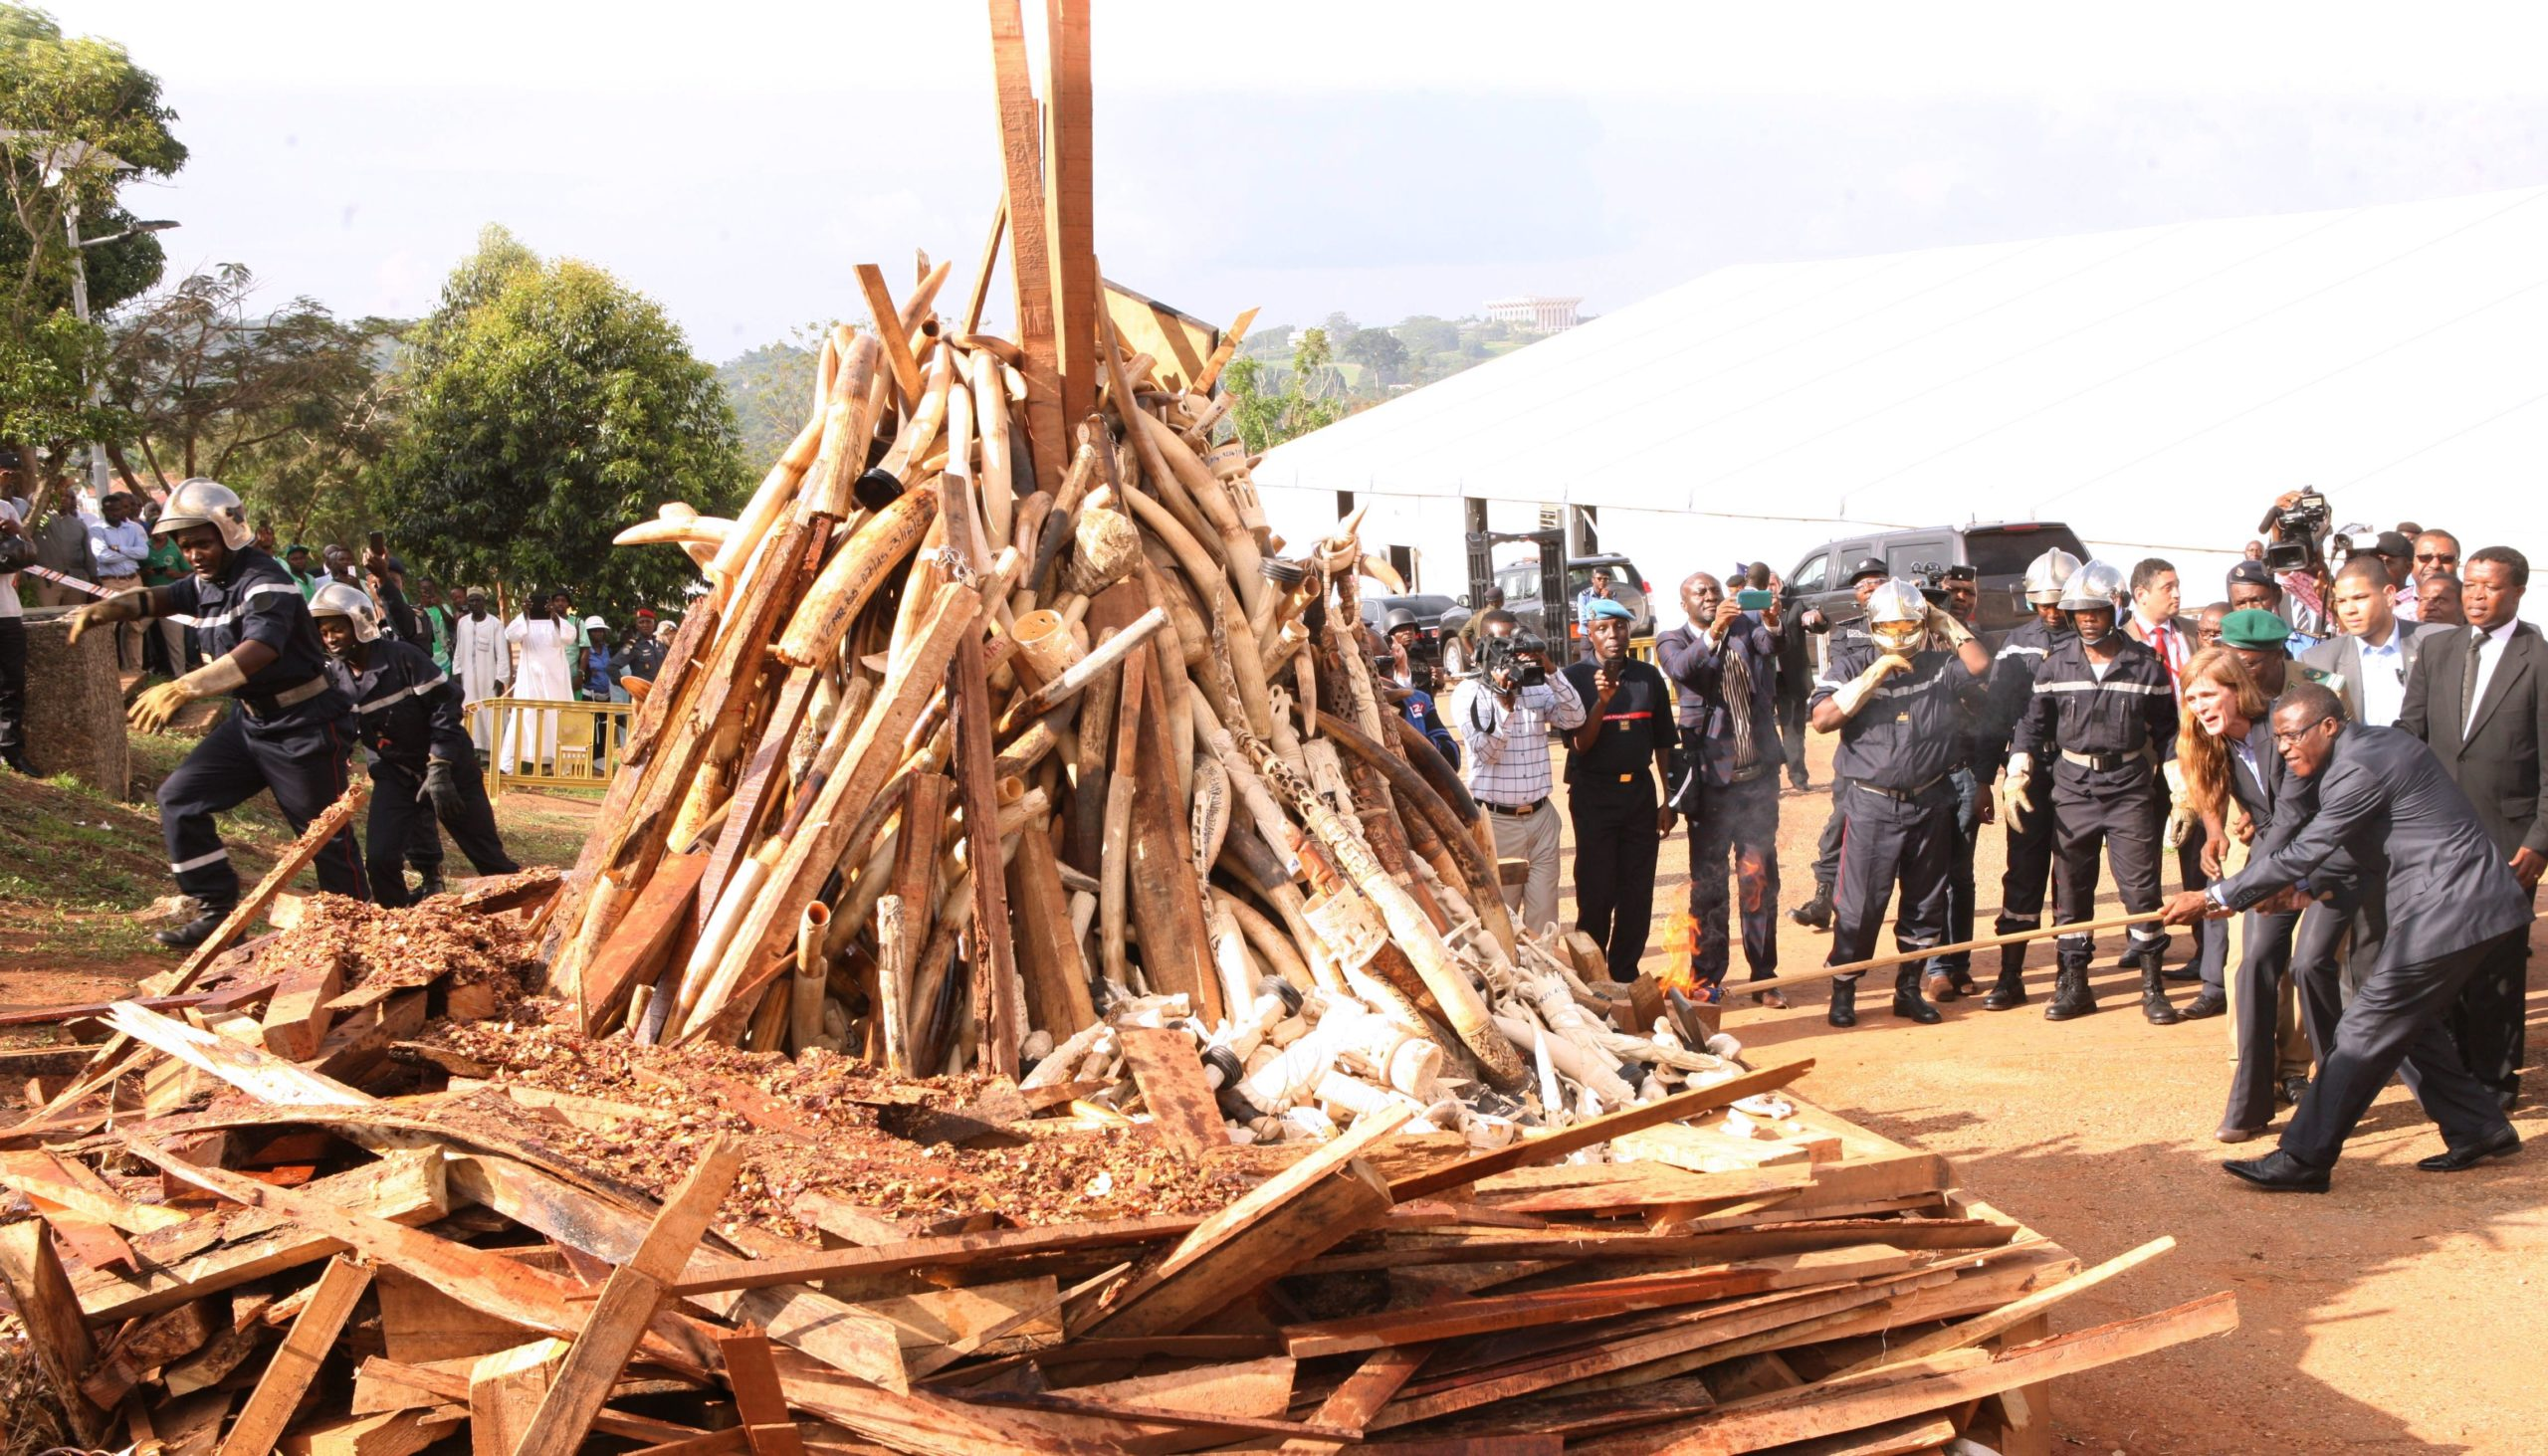 Cameroonian Minister of Wildlife Ngole Philip Ngwese and former U.S. ambassador to the United Nations Samantha Power set fire to a pile of ivory in Yaounde on April 19, 2016. (Reinnier Kaze/AFP via Getty Images)